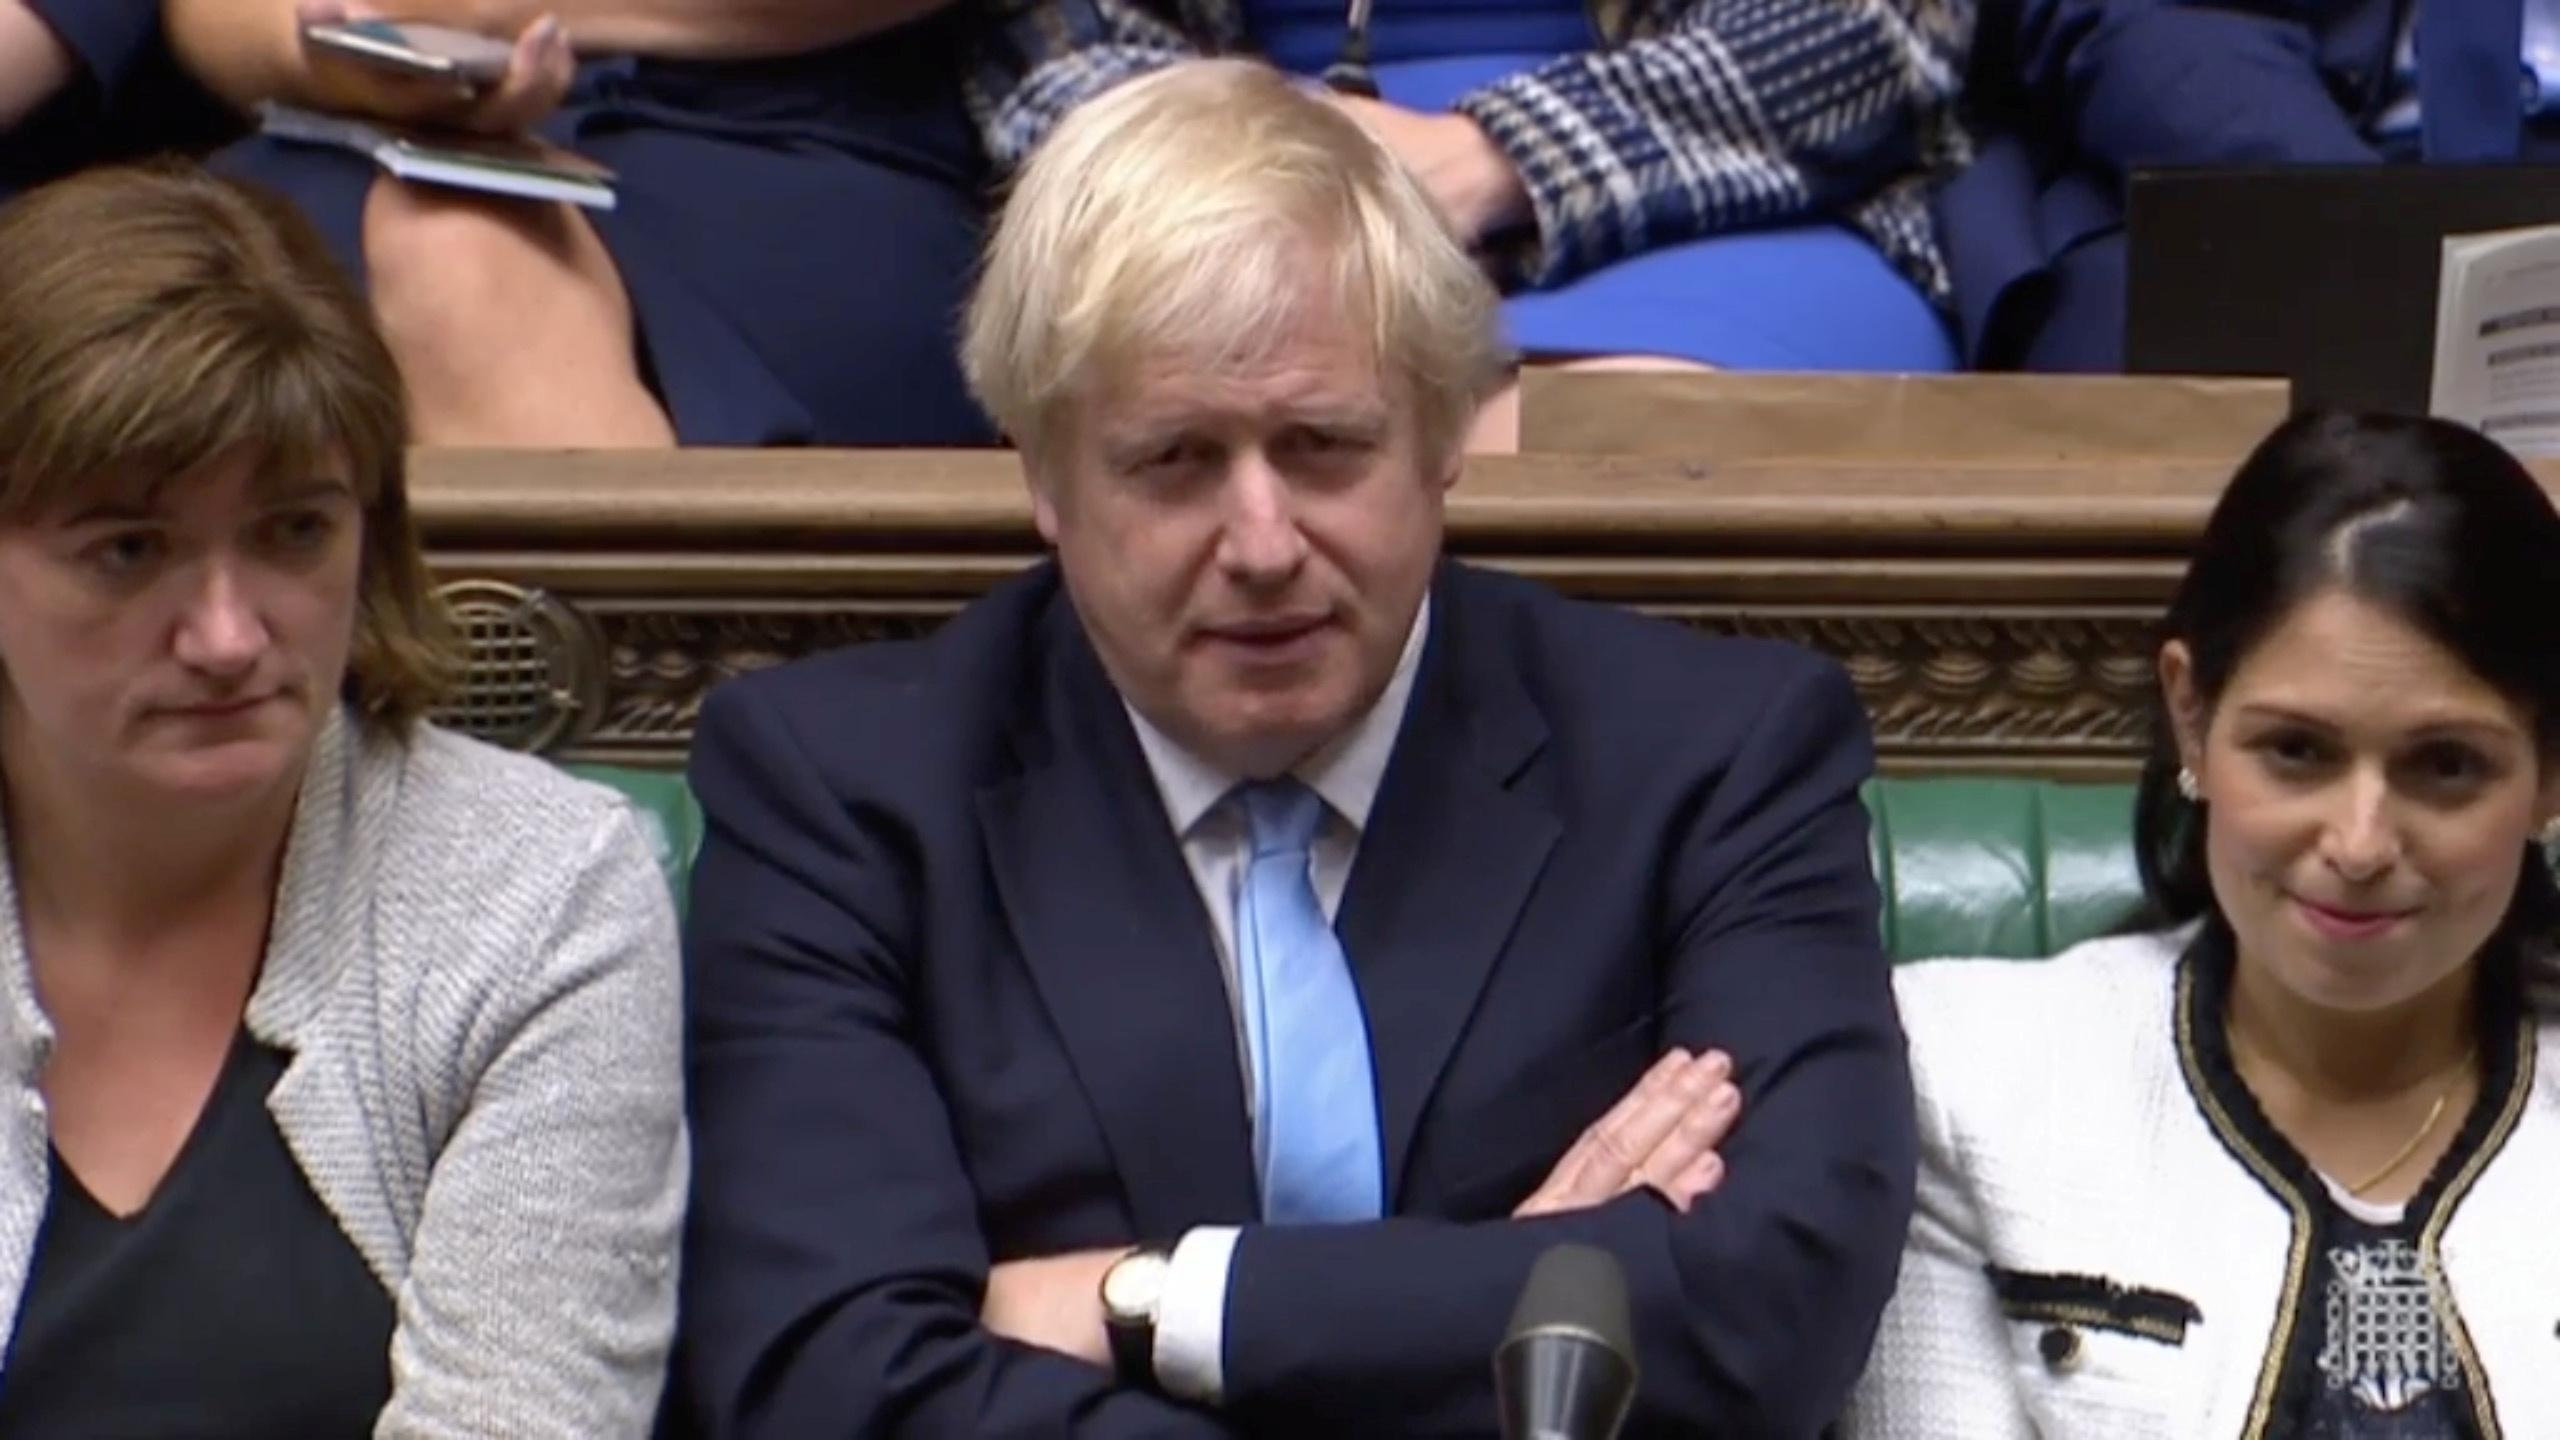 PM Johnson tells parliament - You can tie my hands, but I will not...